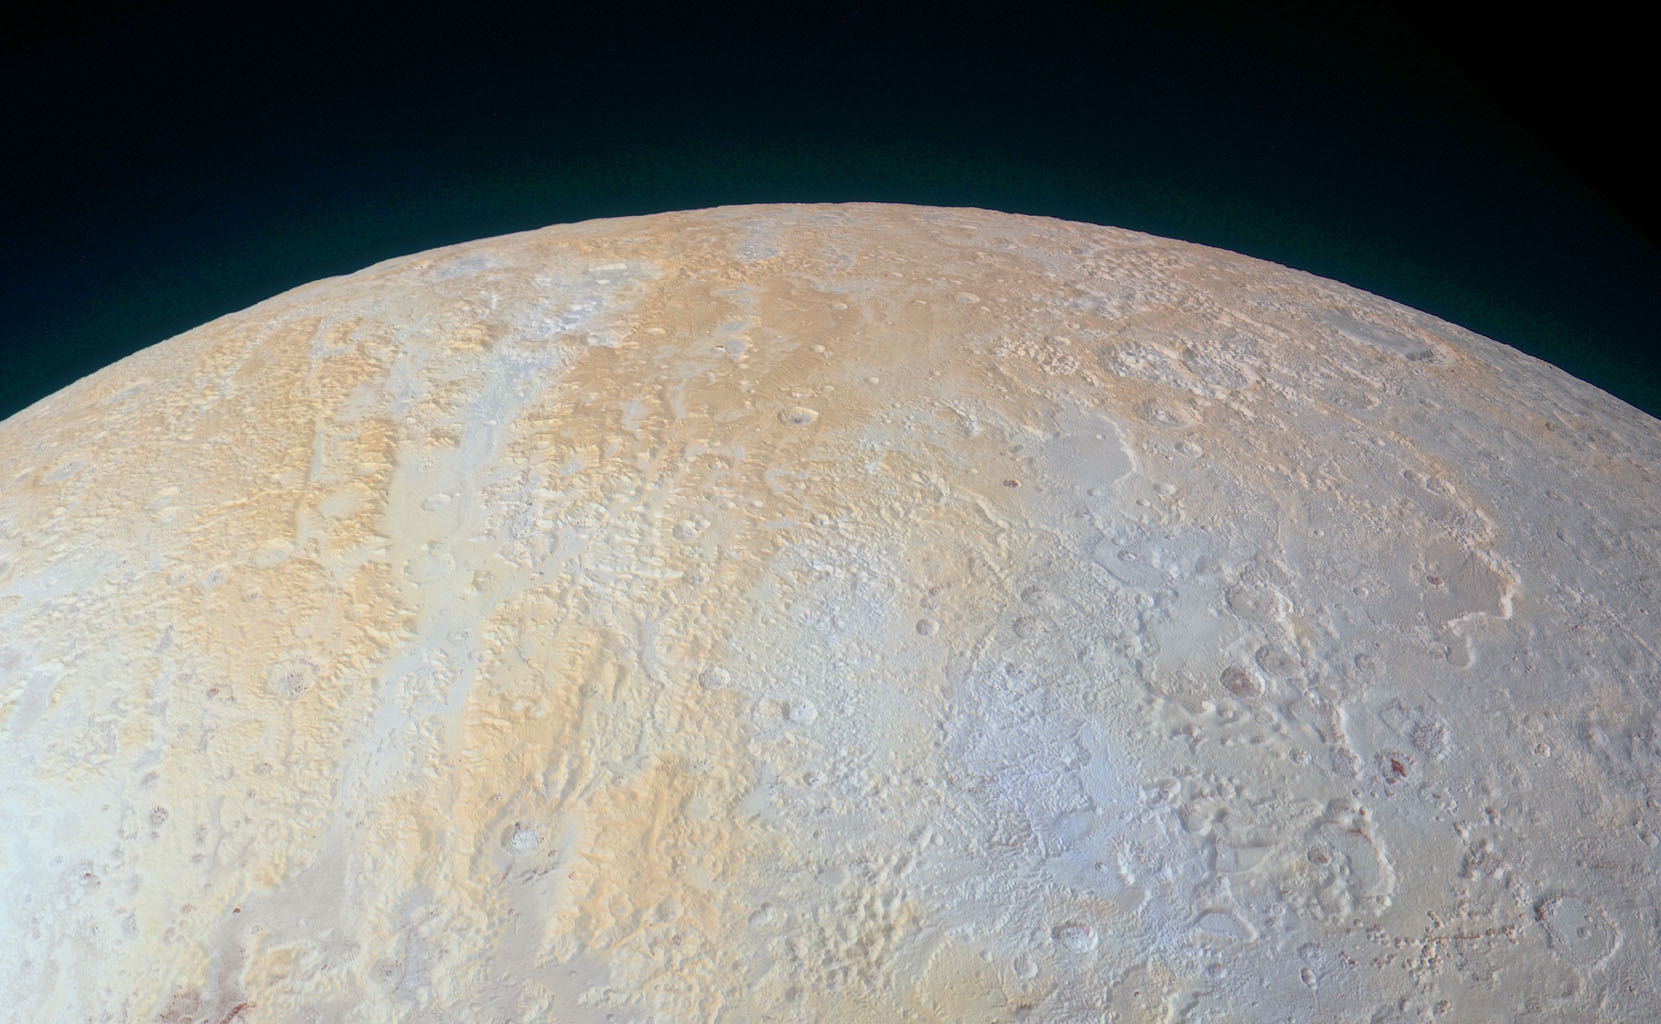 This ethereal scene captured by NASA's New Horizons spacecraft tells yet another story of Pluto's diversity of geological and compositional features-this time in an enhanced color image of the north polar area.